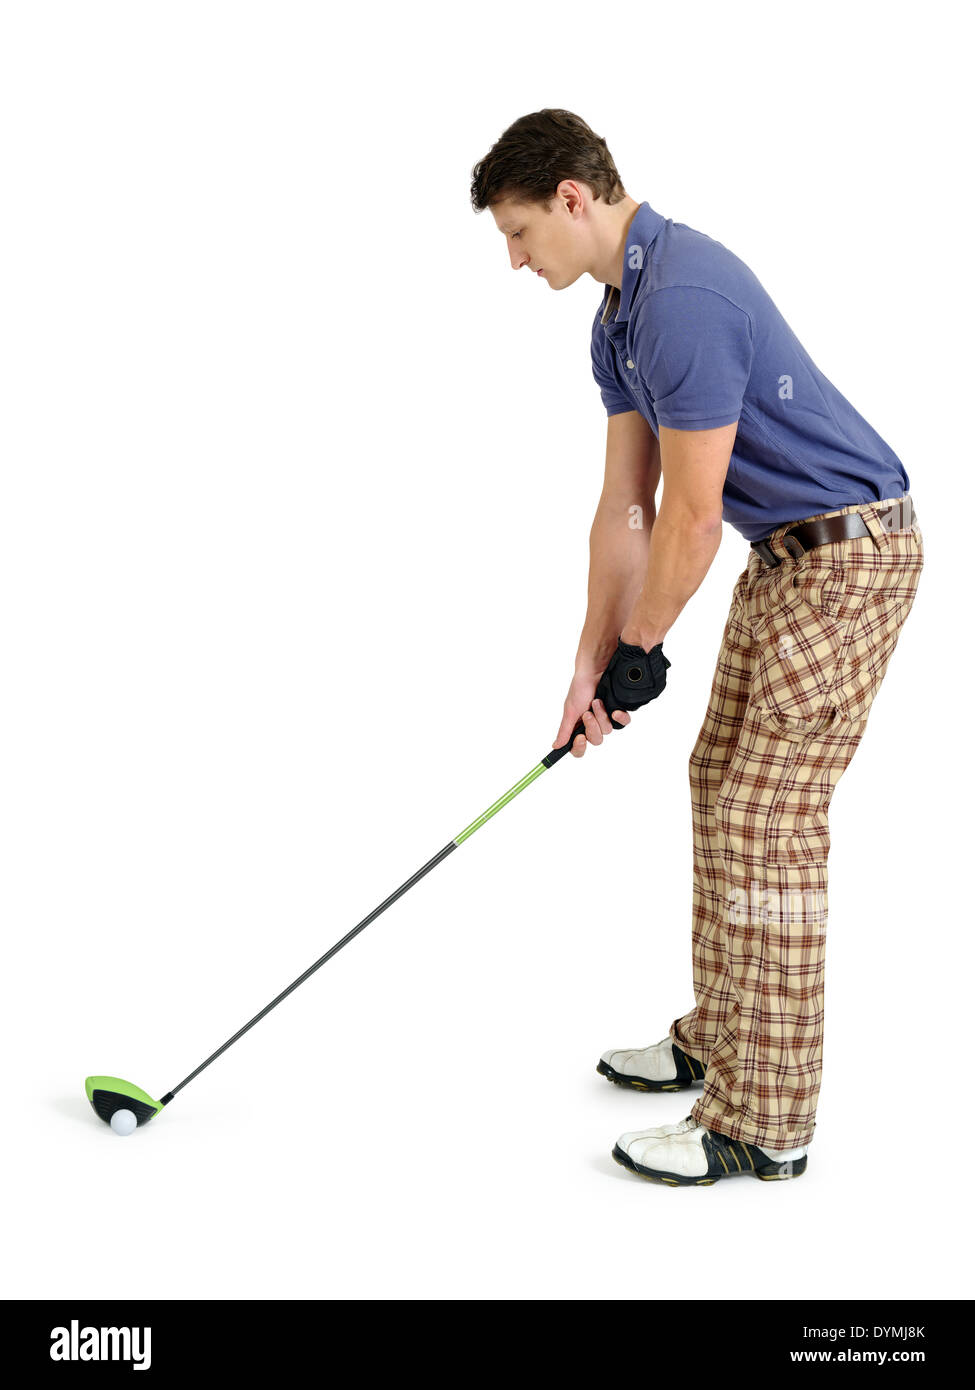 Photo of a male golfer in his late twenties about to swing his driver. Stock Photo